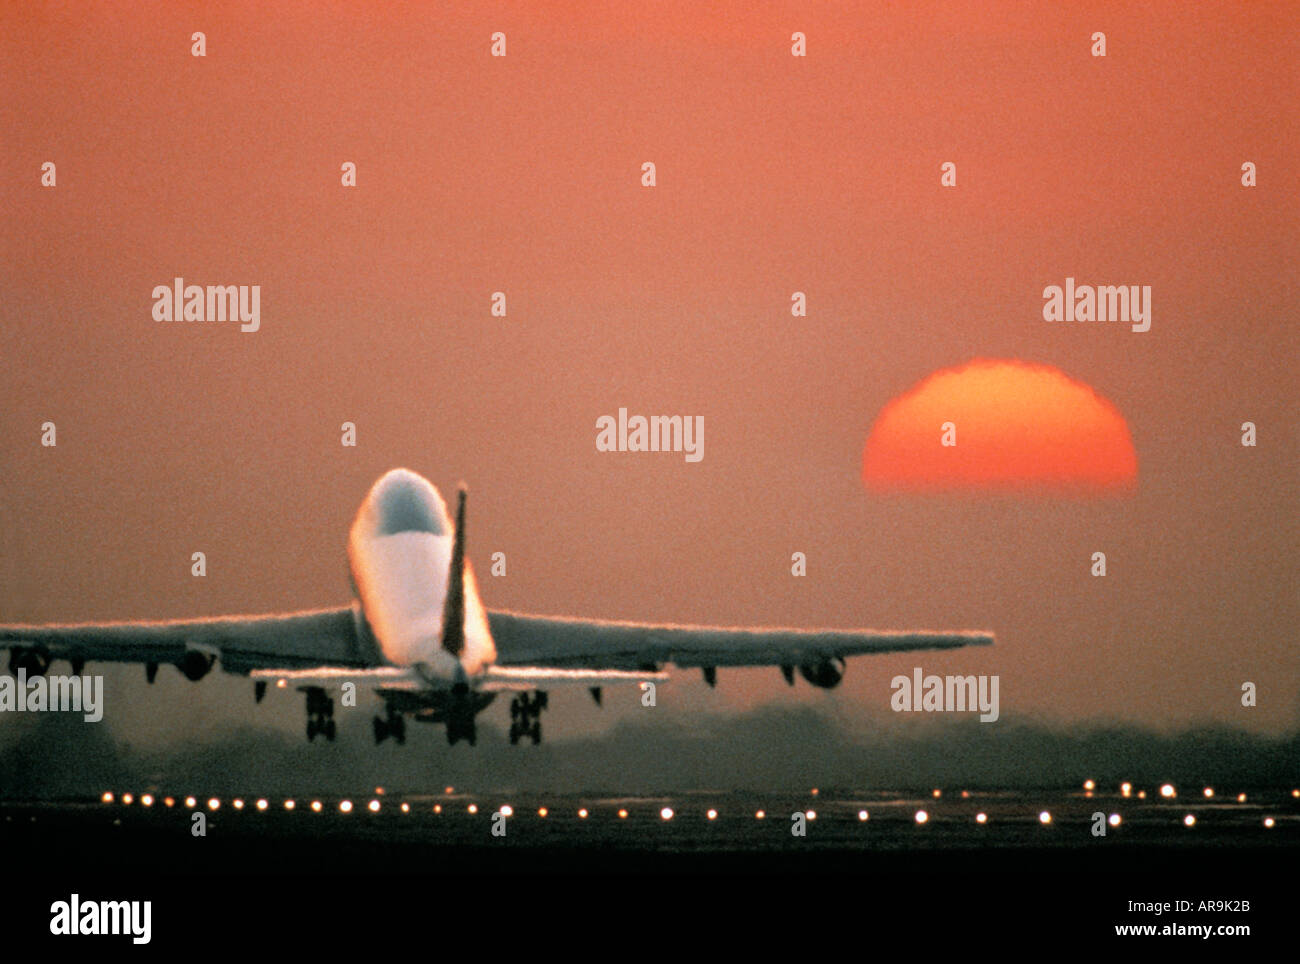 airliner Boeing 747 jumbo jet airliner taking off at sunset sunrise dusk showing jet thrust exhaust - Stock Image